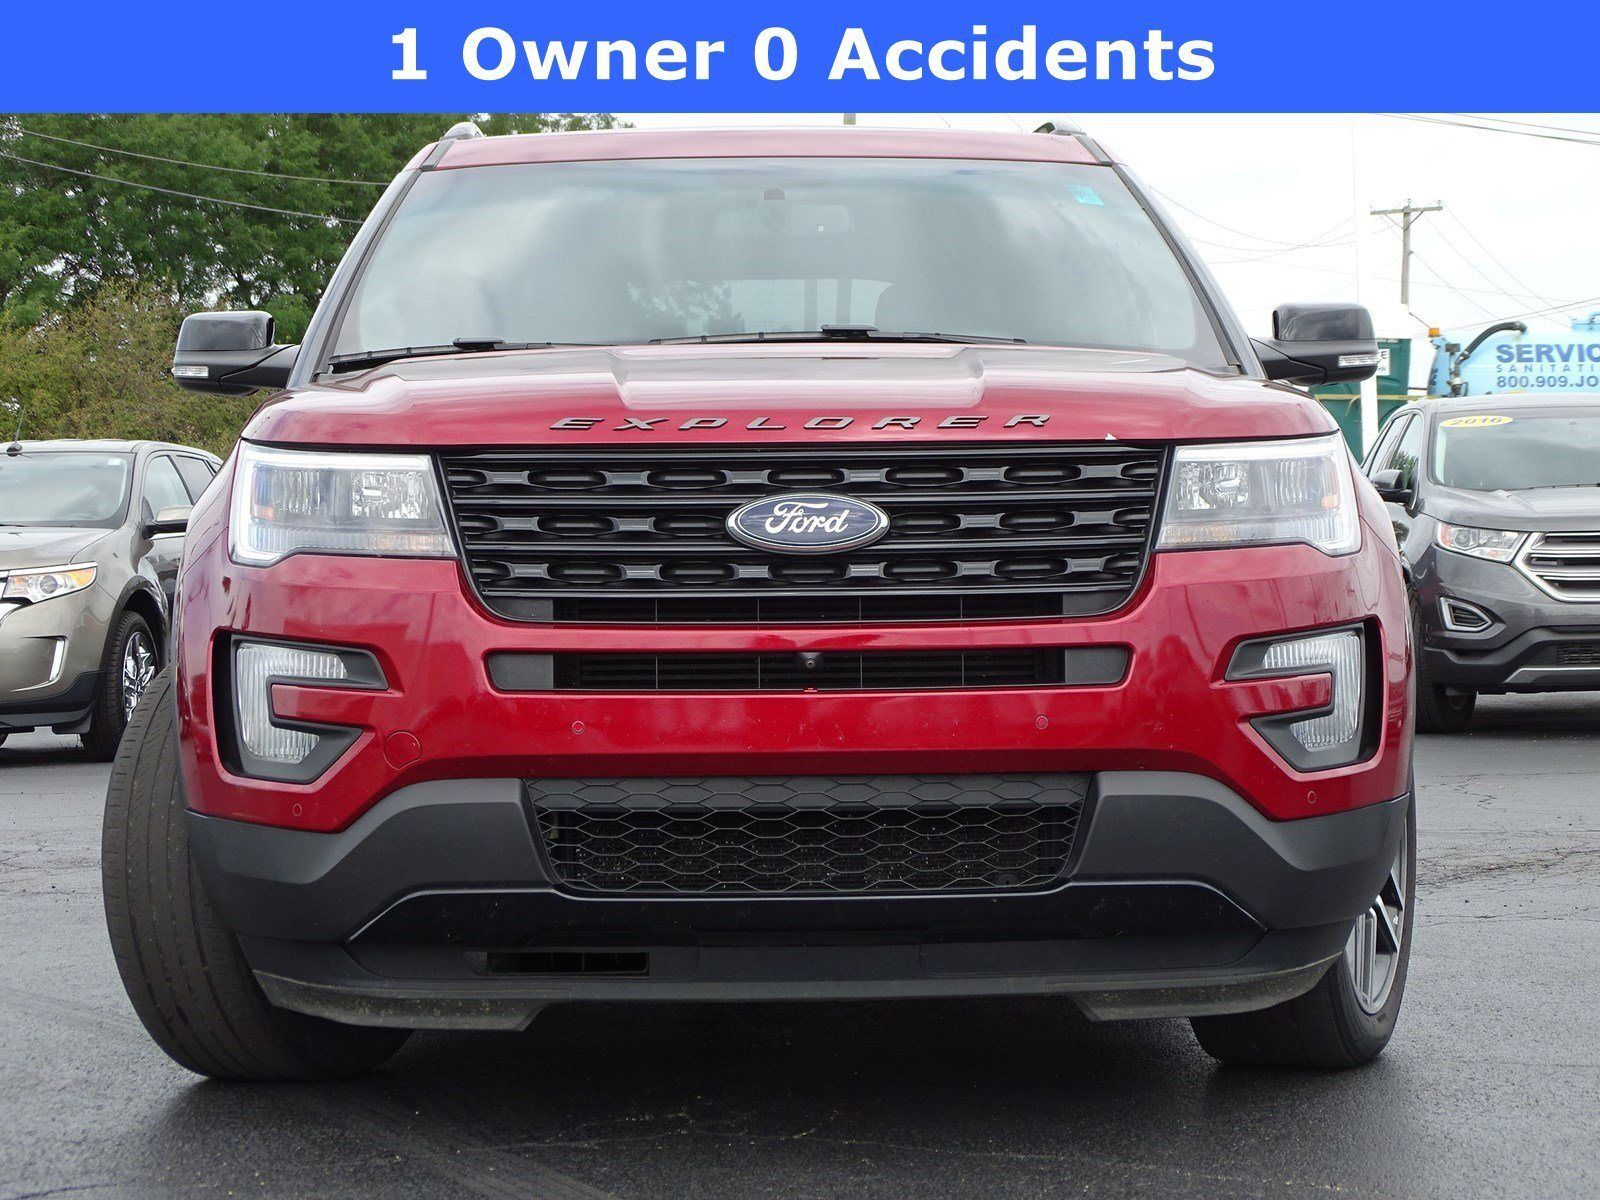 2021 Ford Explorer Sports Prices In 2020 Ford Explorer Sport Explorer Sport Ford Explorer